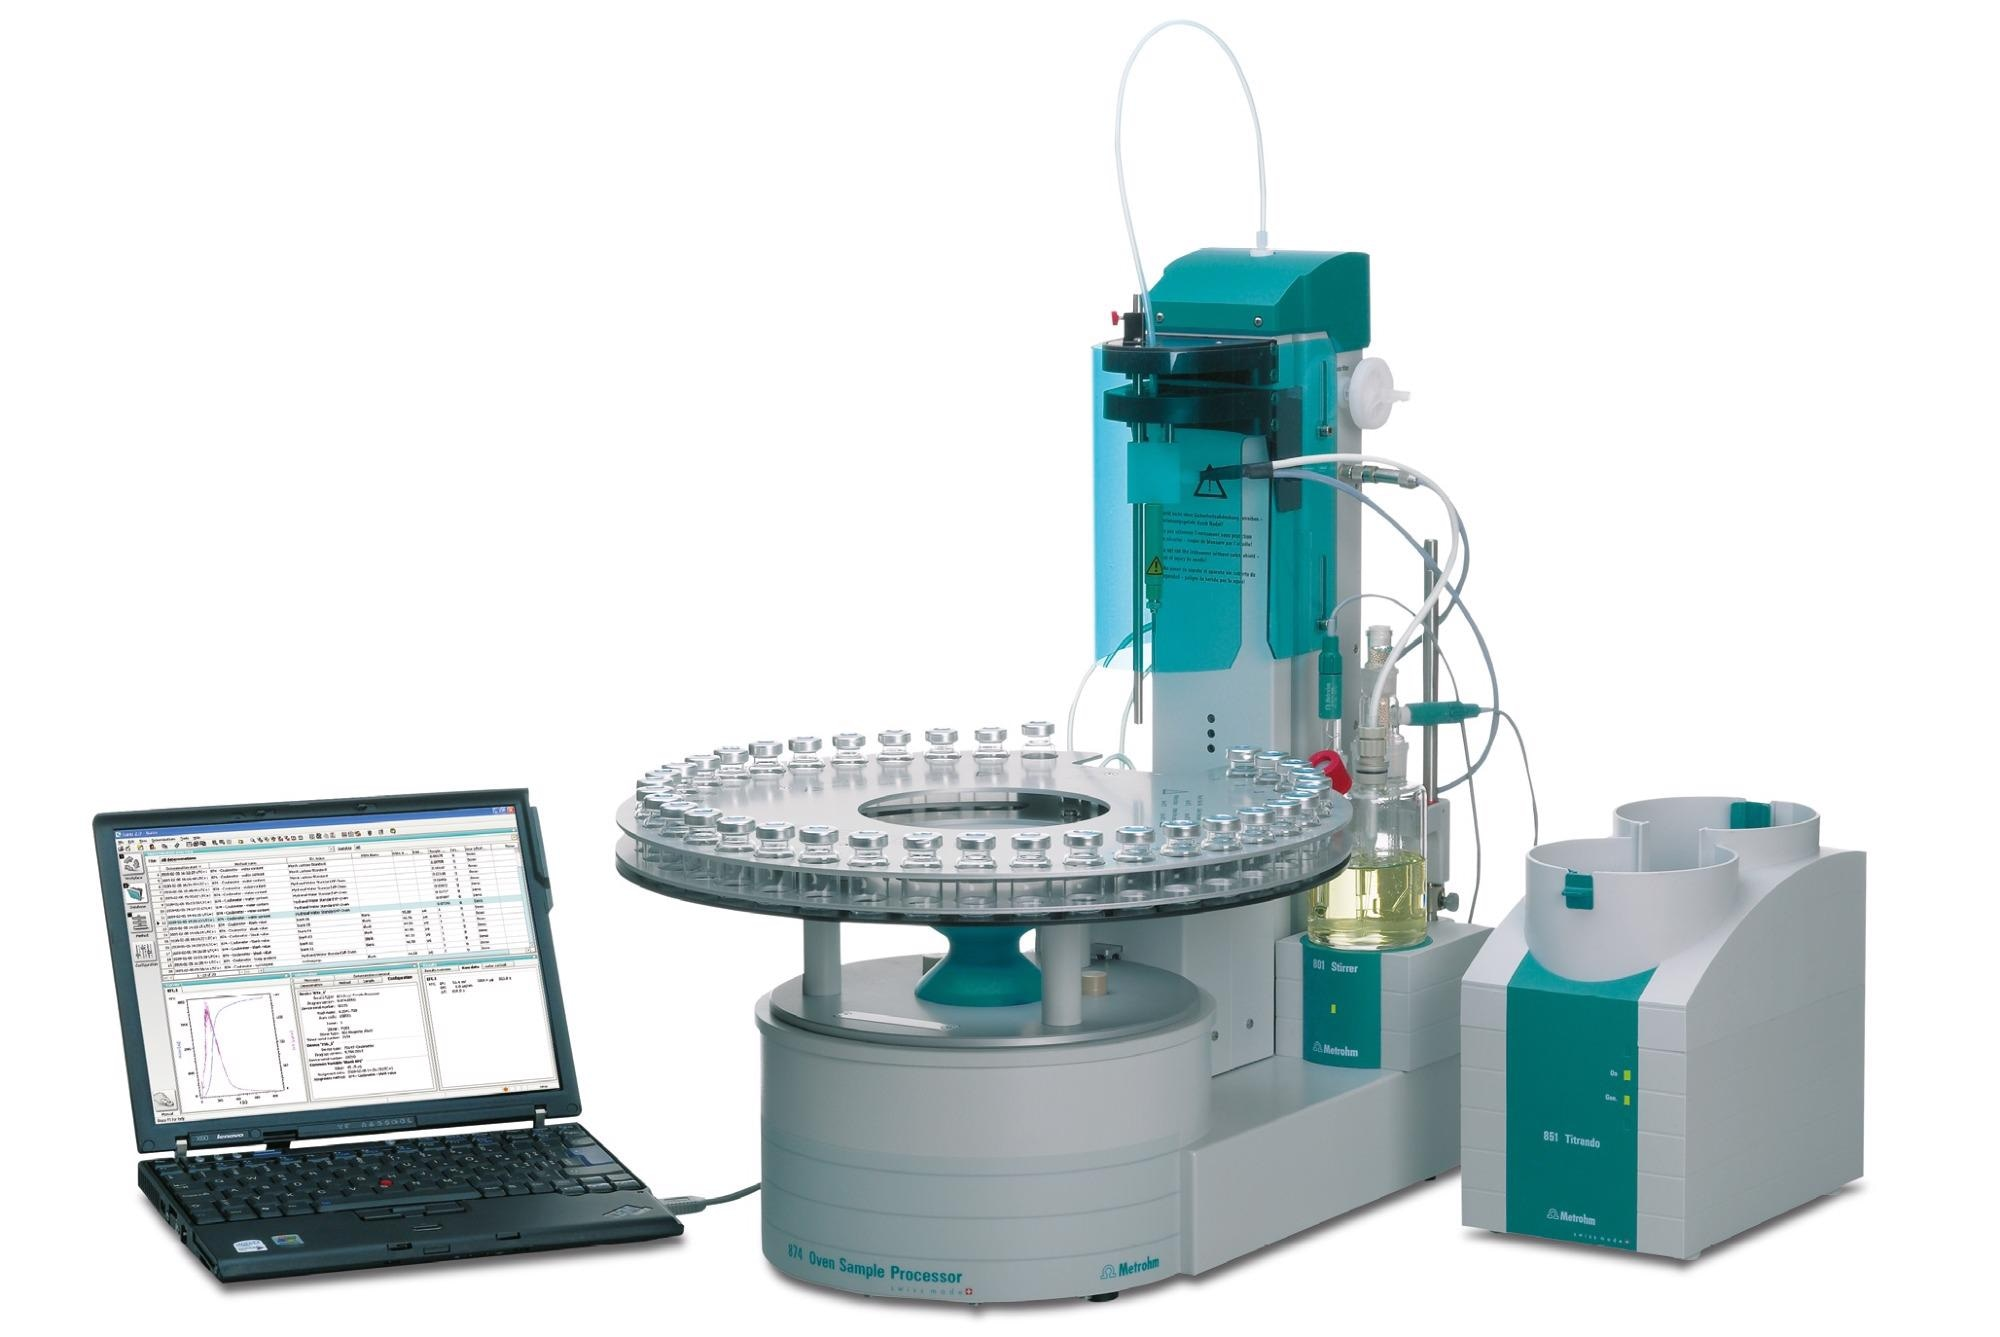 An oven evaporator with a coulometric Karl Fischer titration system suitable for ASTM D6304 Procedure B